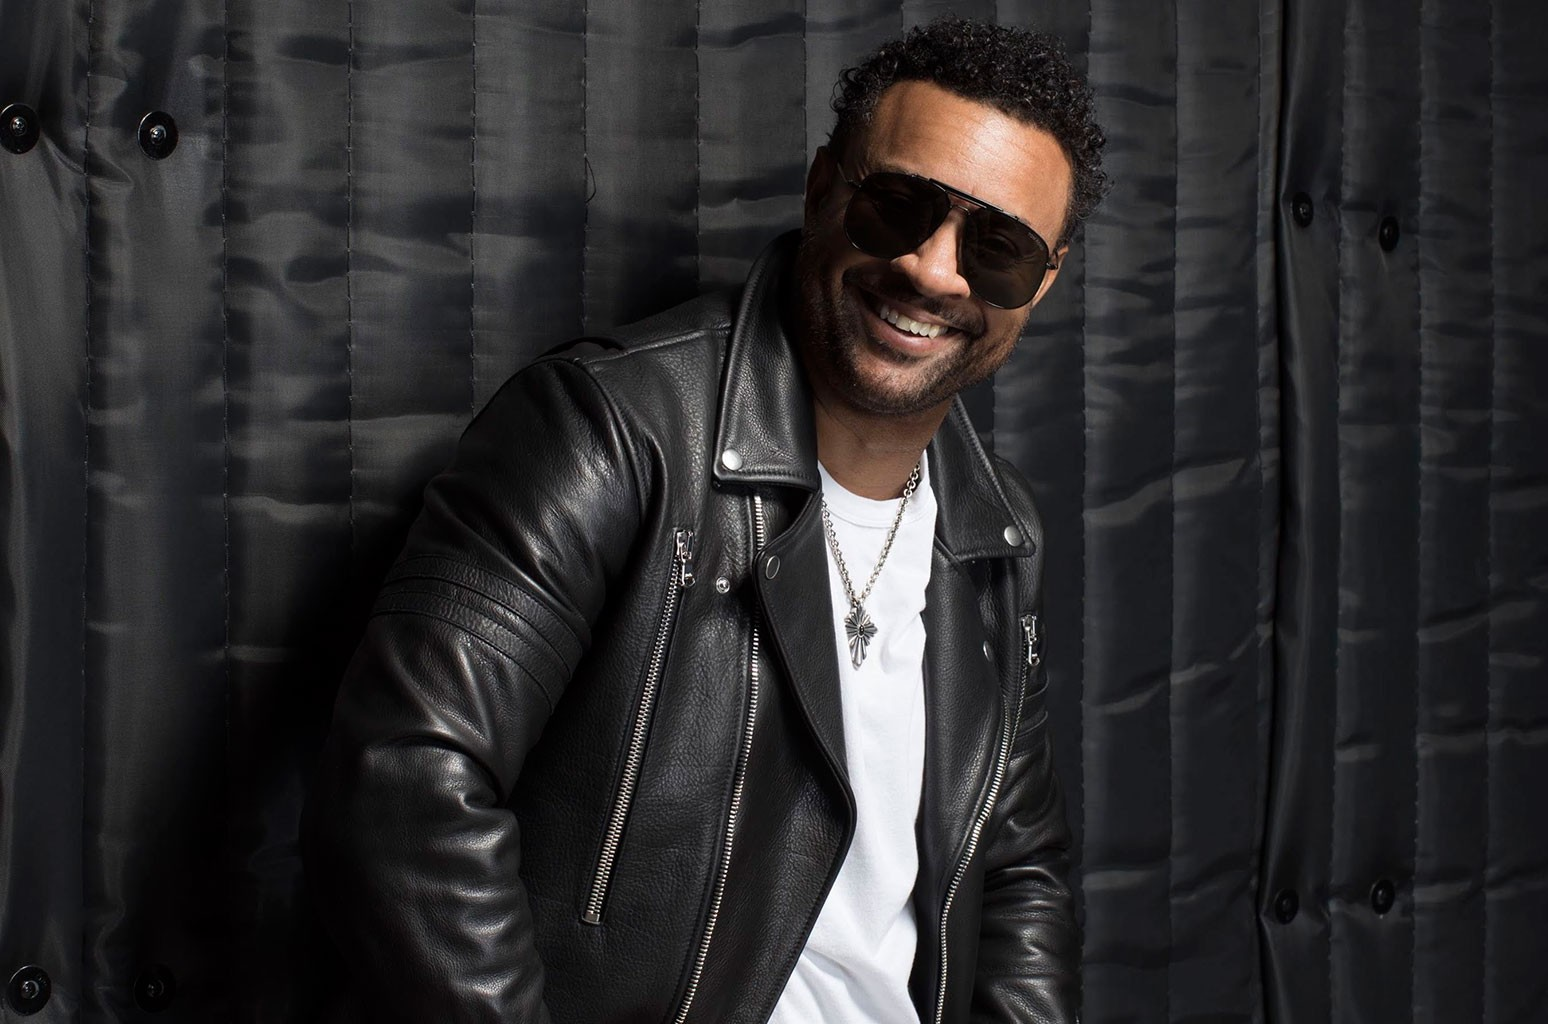 Shaggy Premieres New Single 'You' From Upcoming Album 'Wah Gwaan?!':  Exclusive | Billboard